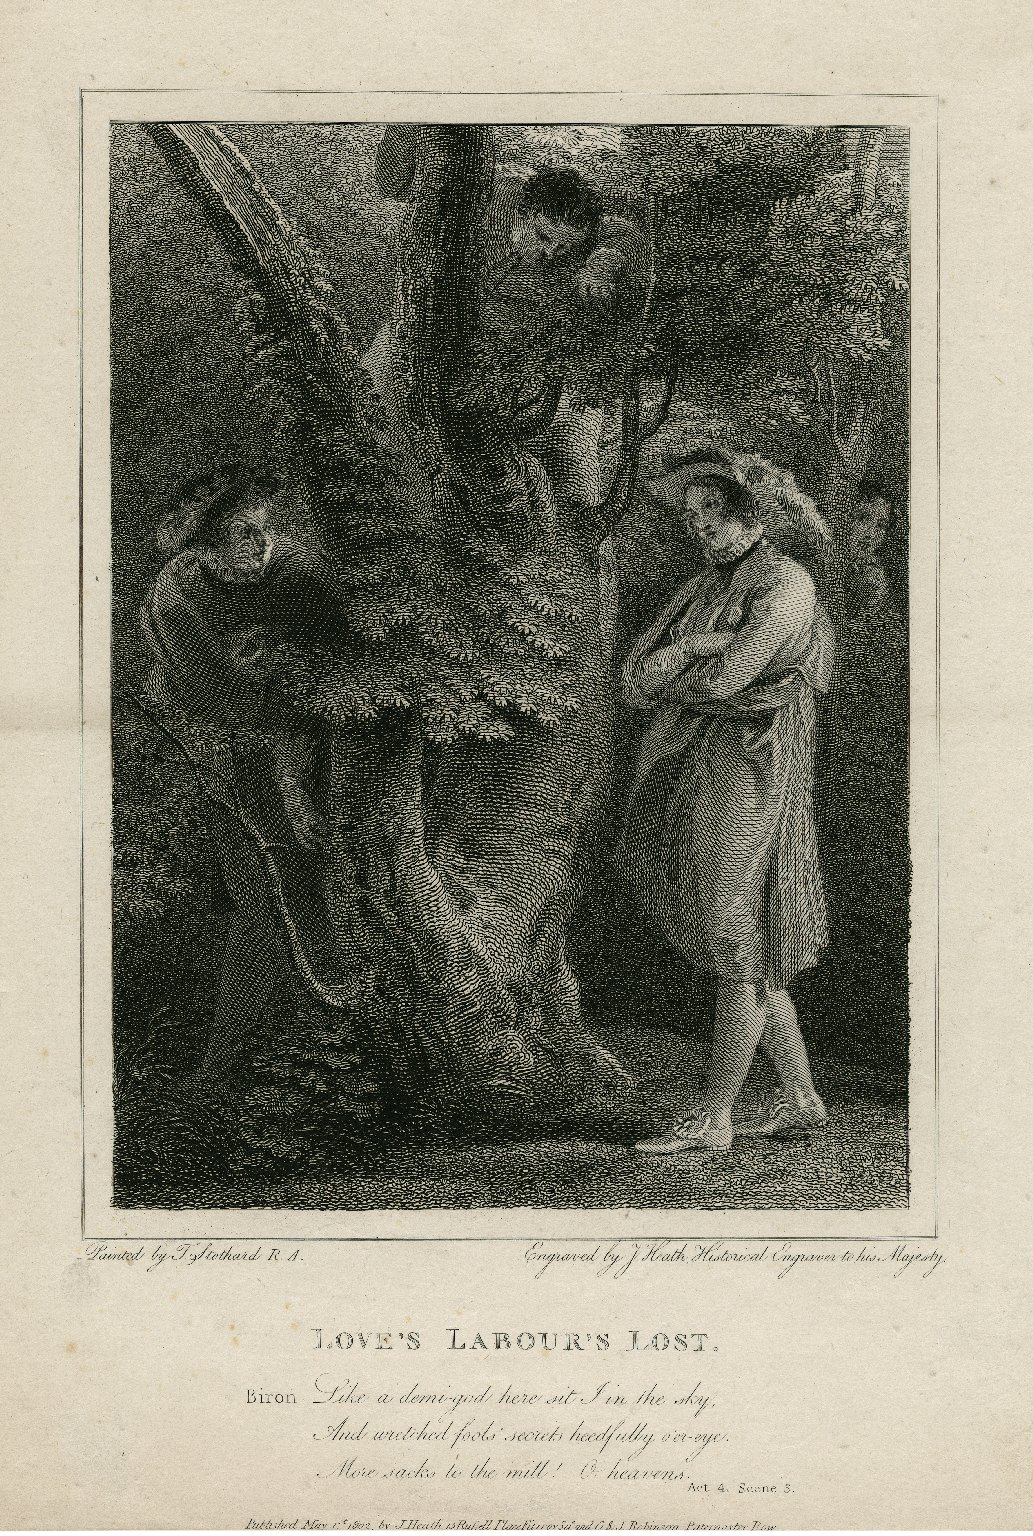 Love's labour's lost ... Like a demi-god here sit I in the sky, and wretched fools' secrets heedfully o'er-eye ... act 4, scene 3 [graphic] / painted by T. Stothard ; engraved by J. Heath, Historical Engraver to his Majesty.